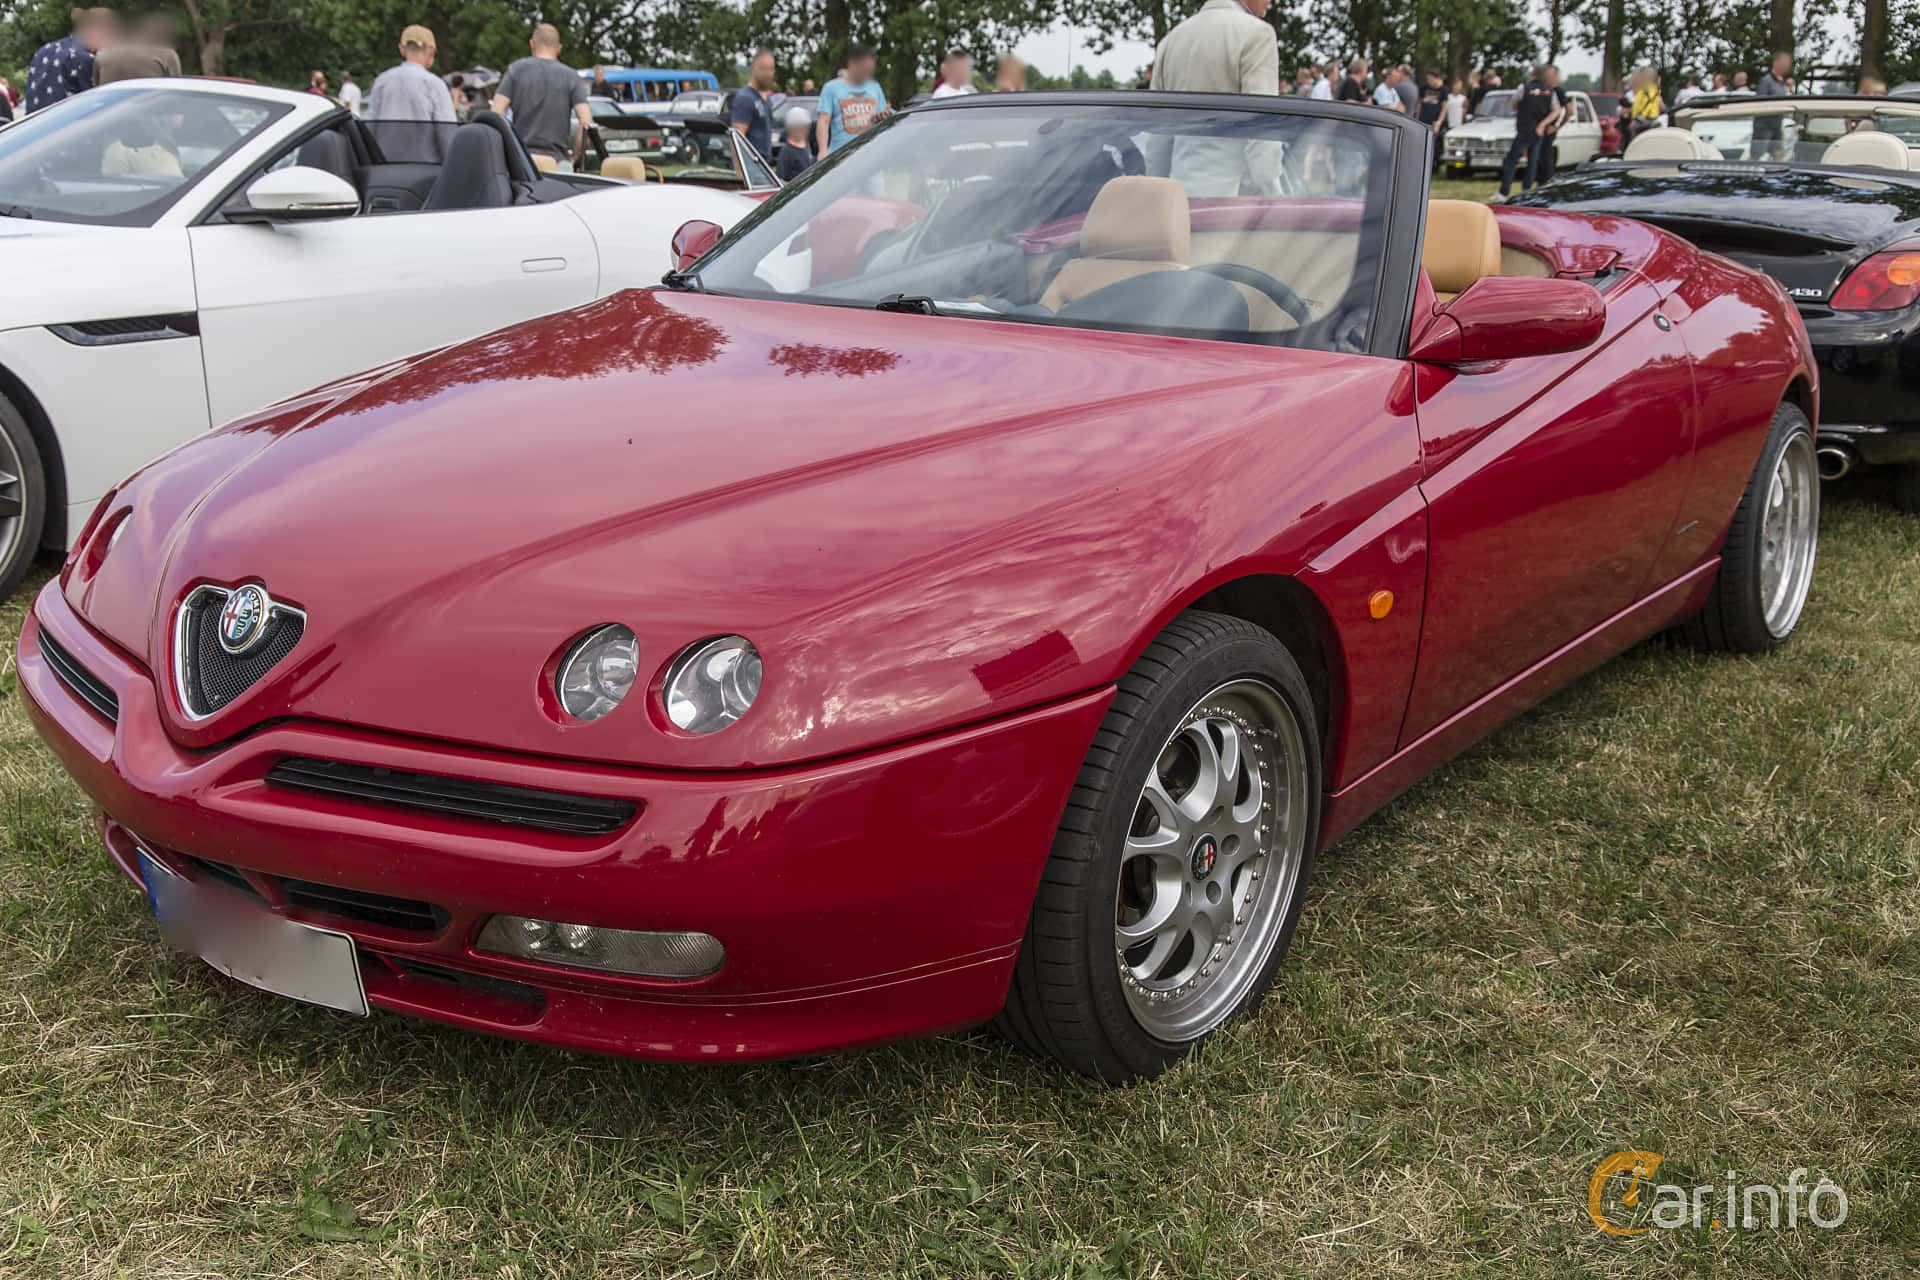 4 images of alfa romeo spider 2 0 ts manual 155hp 1998 by pelle rh car info 1986 Alfa Romeo Spider 1998 Alfa Romeo GTV